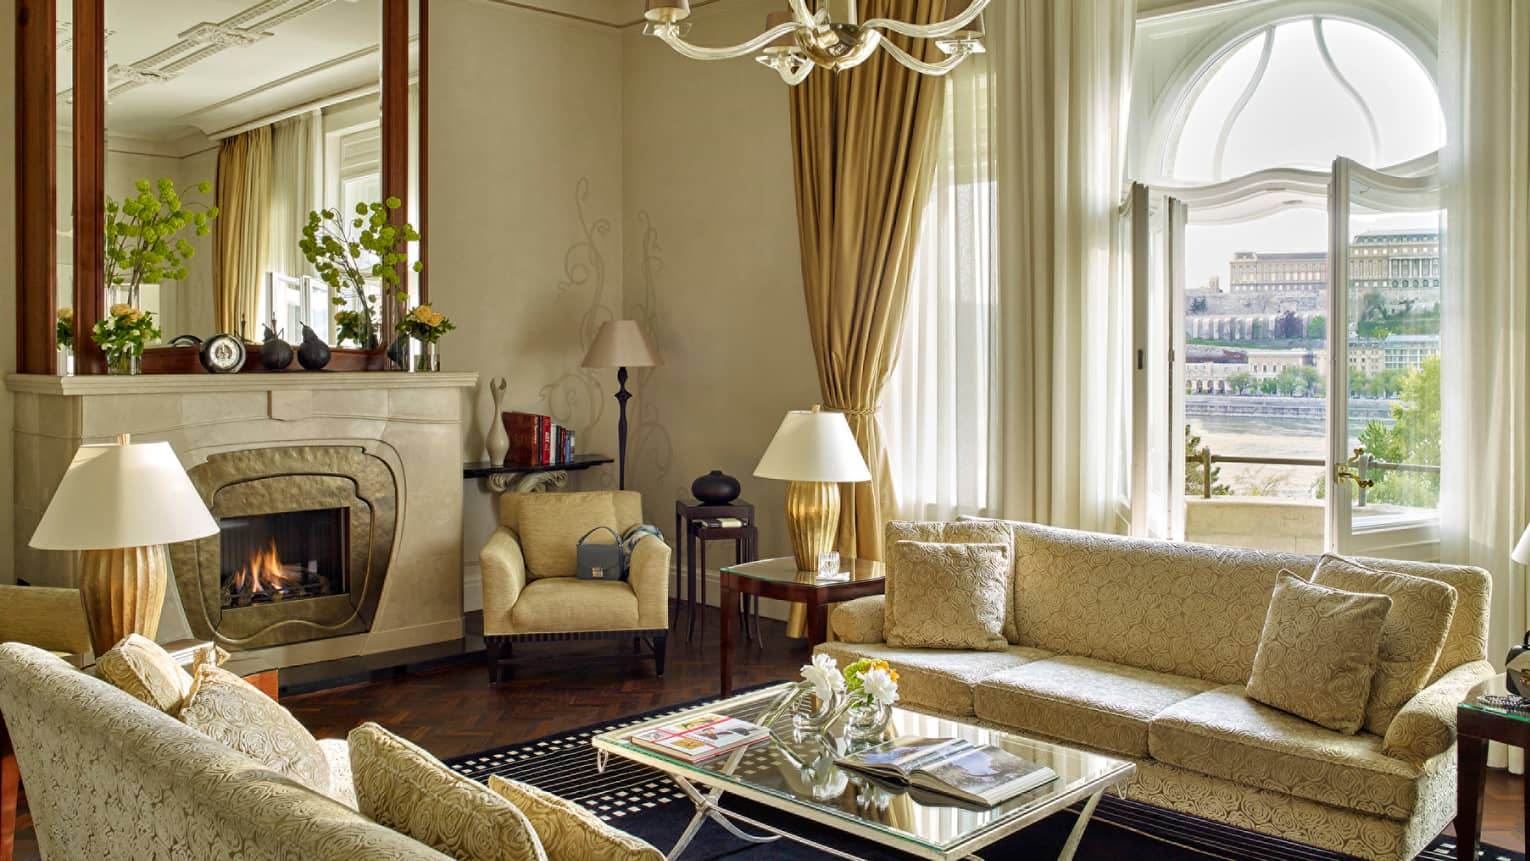 Sir Gresham Presidential Suite velvet sofa with ivory roses by fireplace with large mirror above mantel